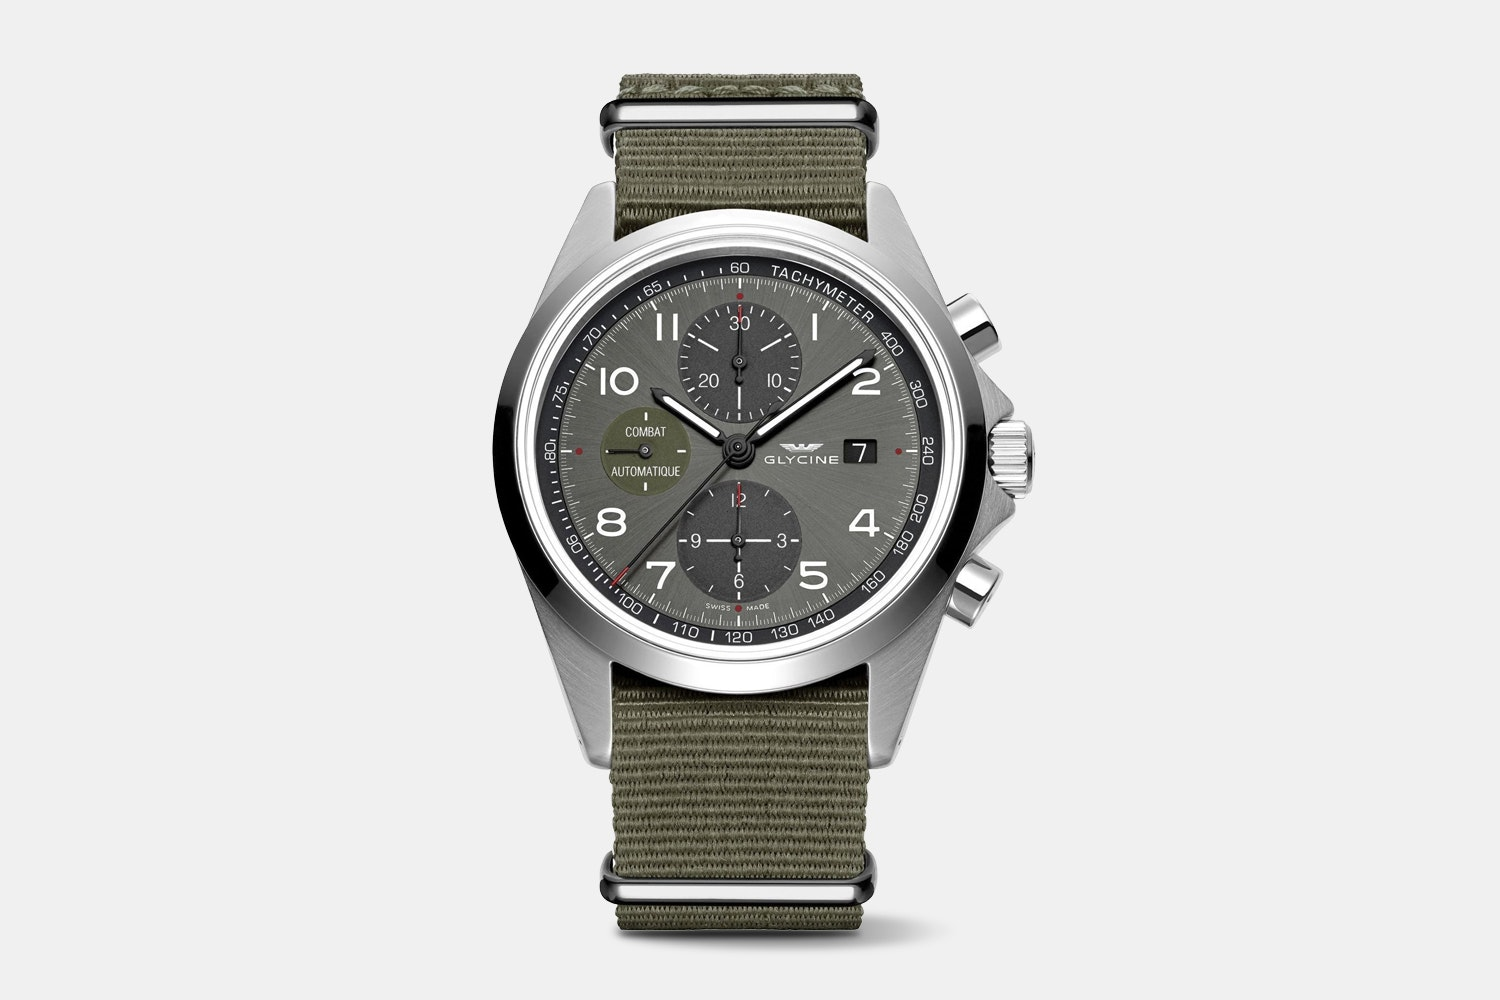 GL0099 (gray dial, olive fabric strap)